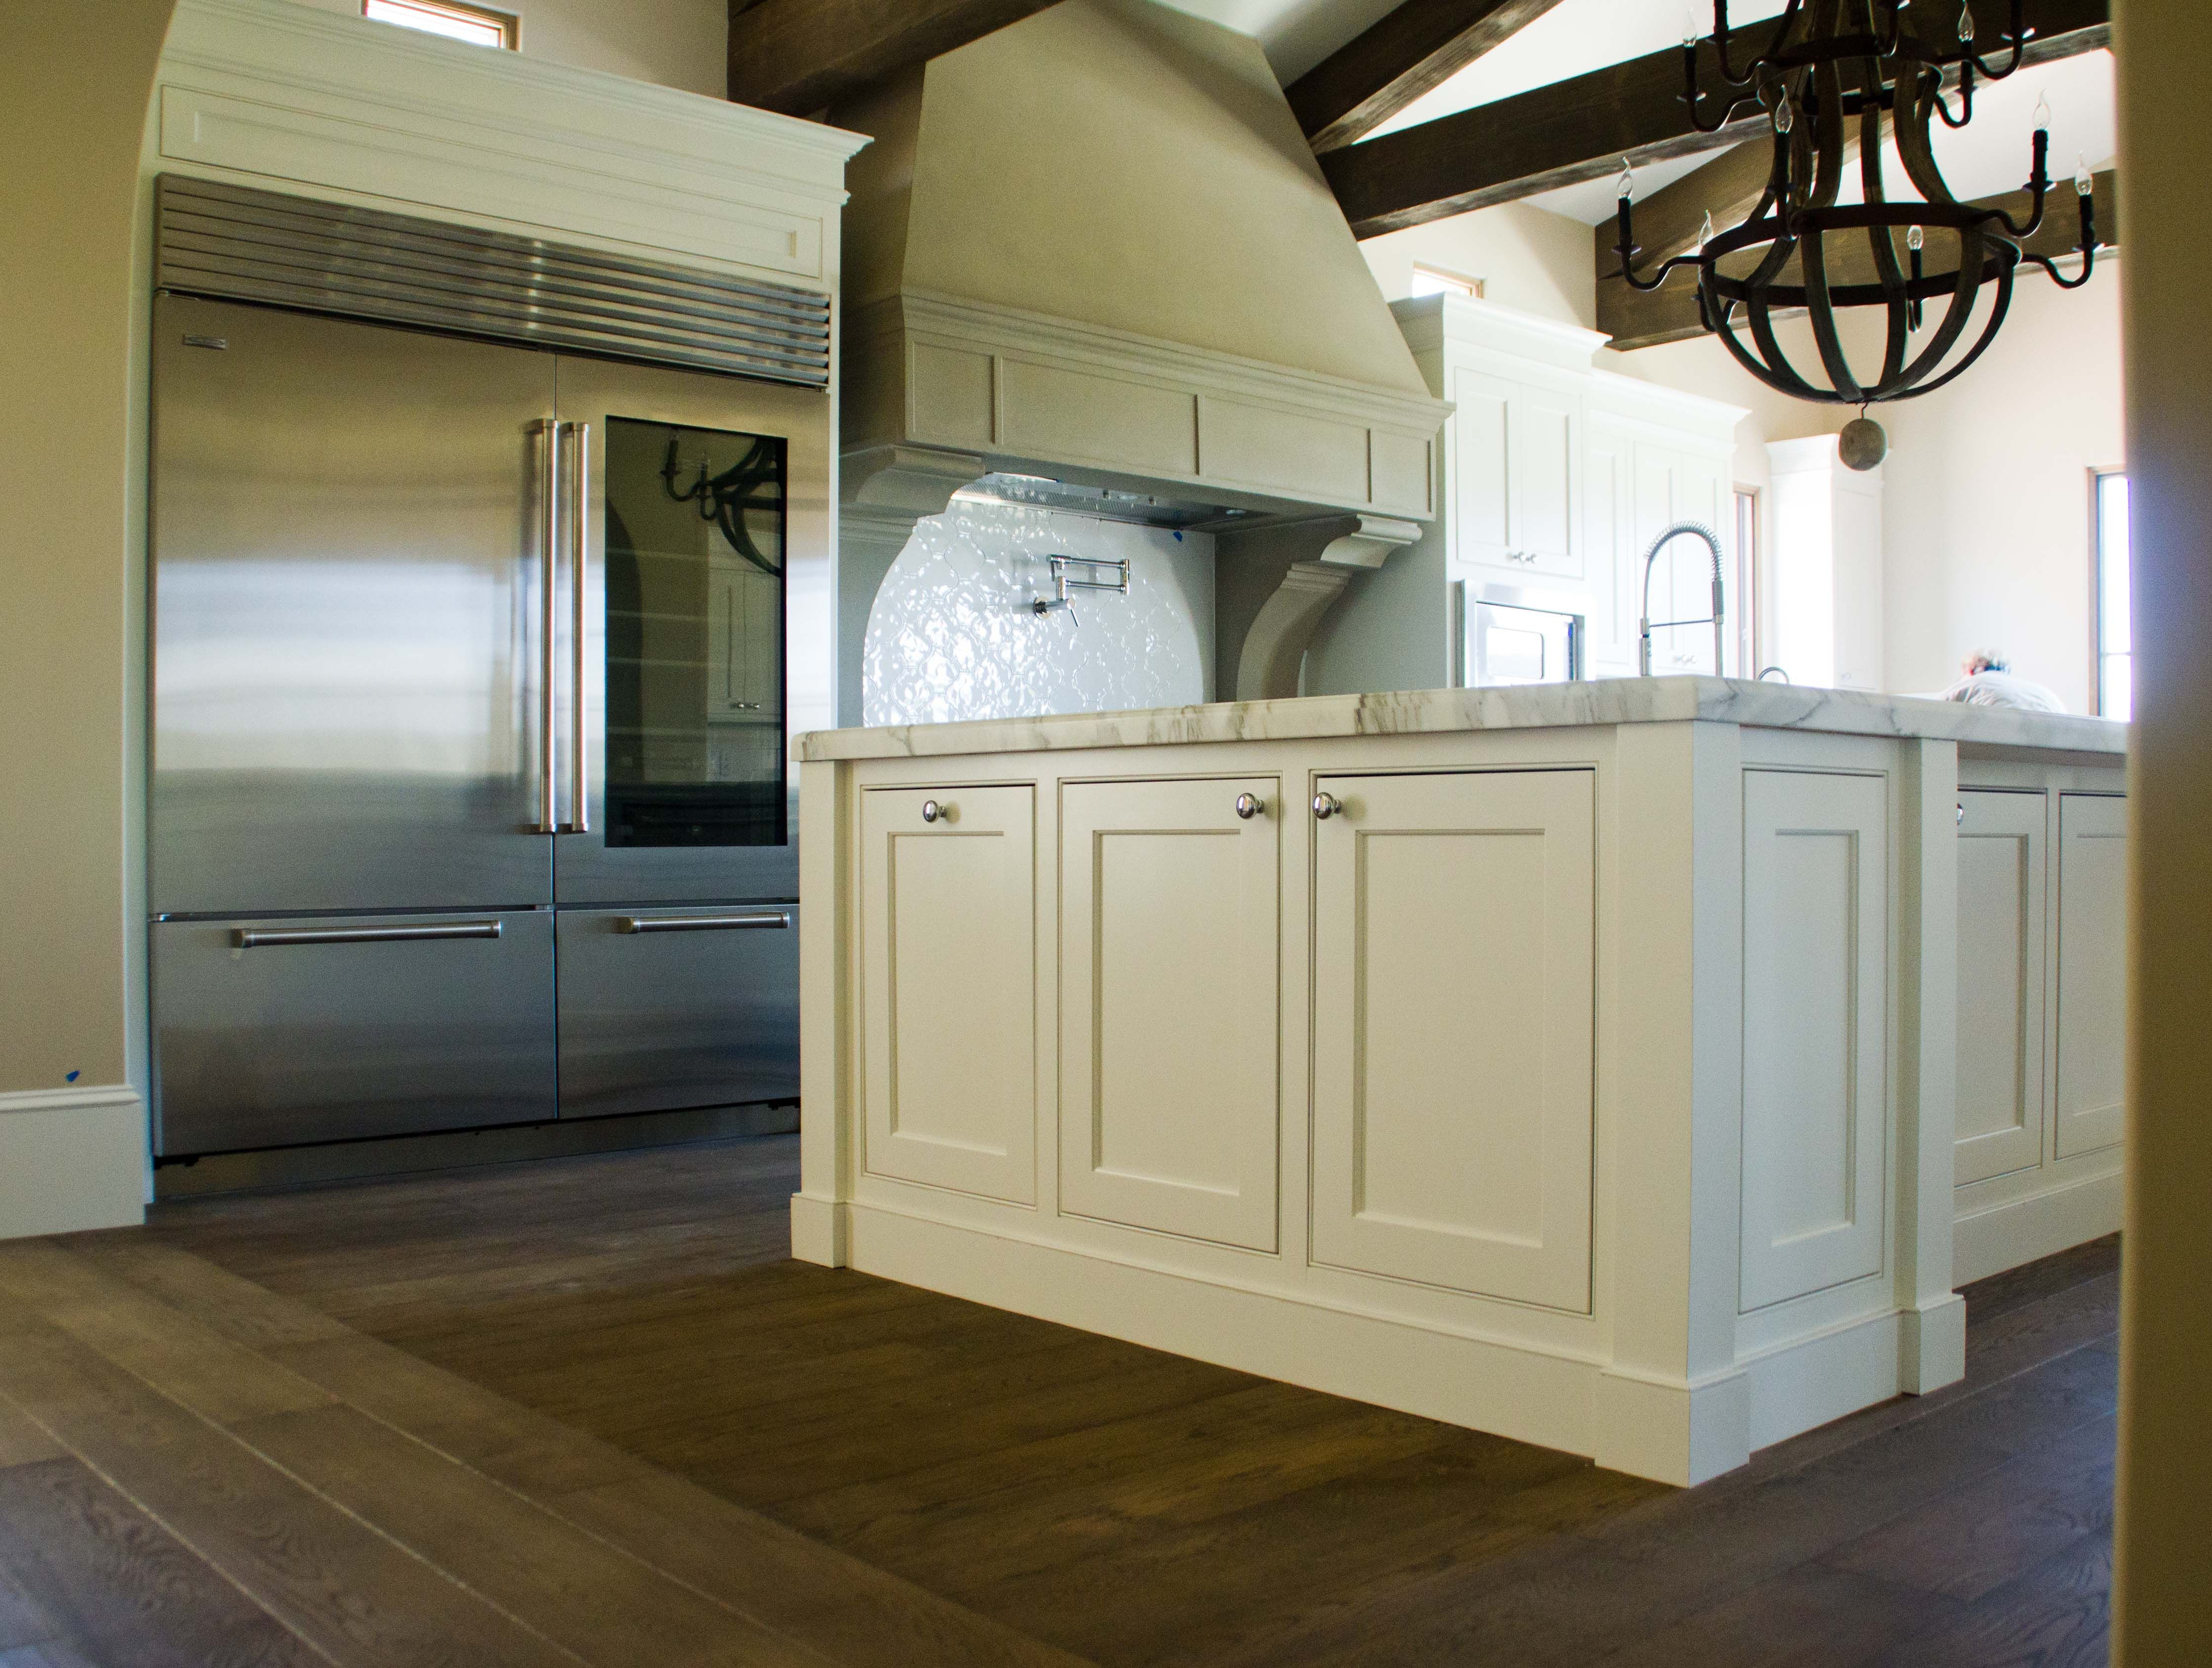 Flush Fit Island Kitchen Cabinets Without Toe Kick Kitchen Cabinets Toe Kick Luxury Kitchen Cabinets